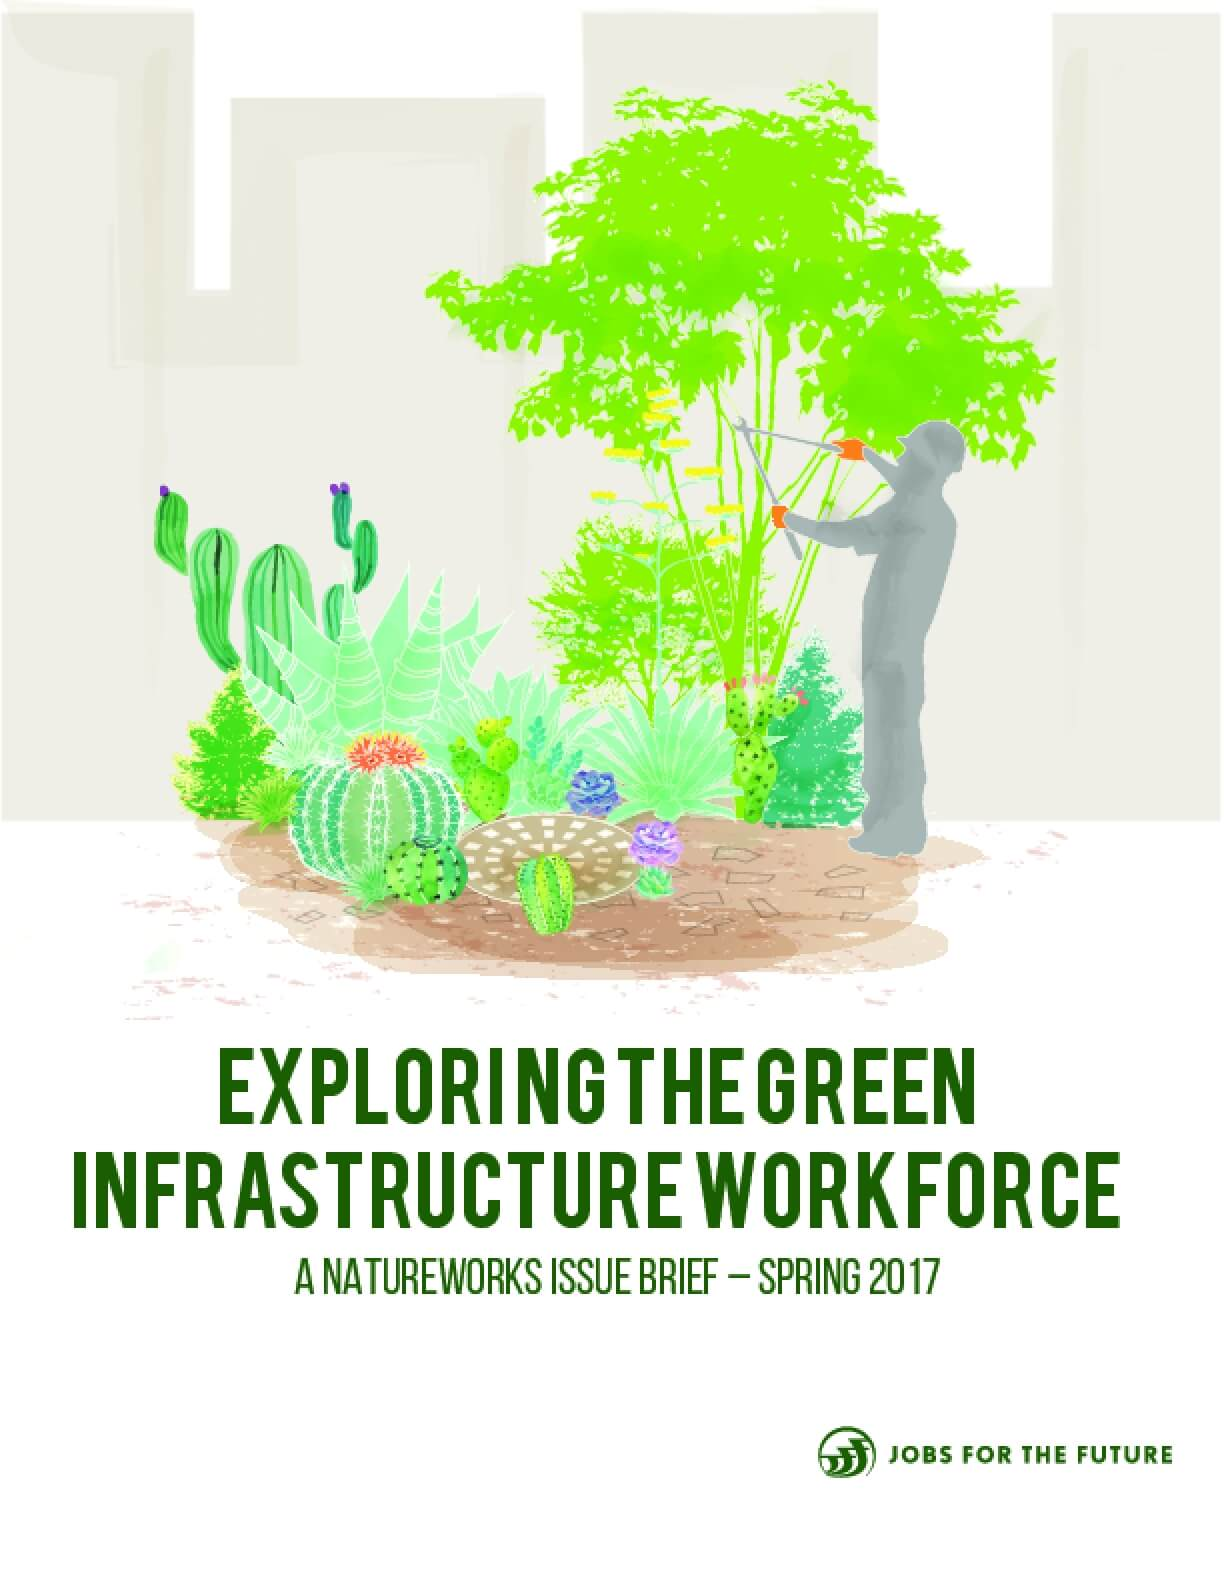 Exploring the Green Infrastructure Workforce: Jobs for the Future